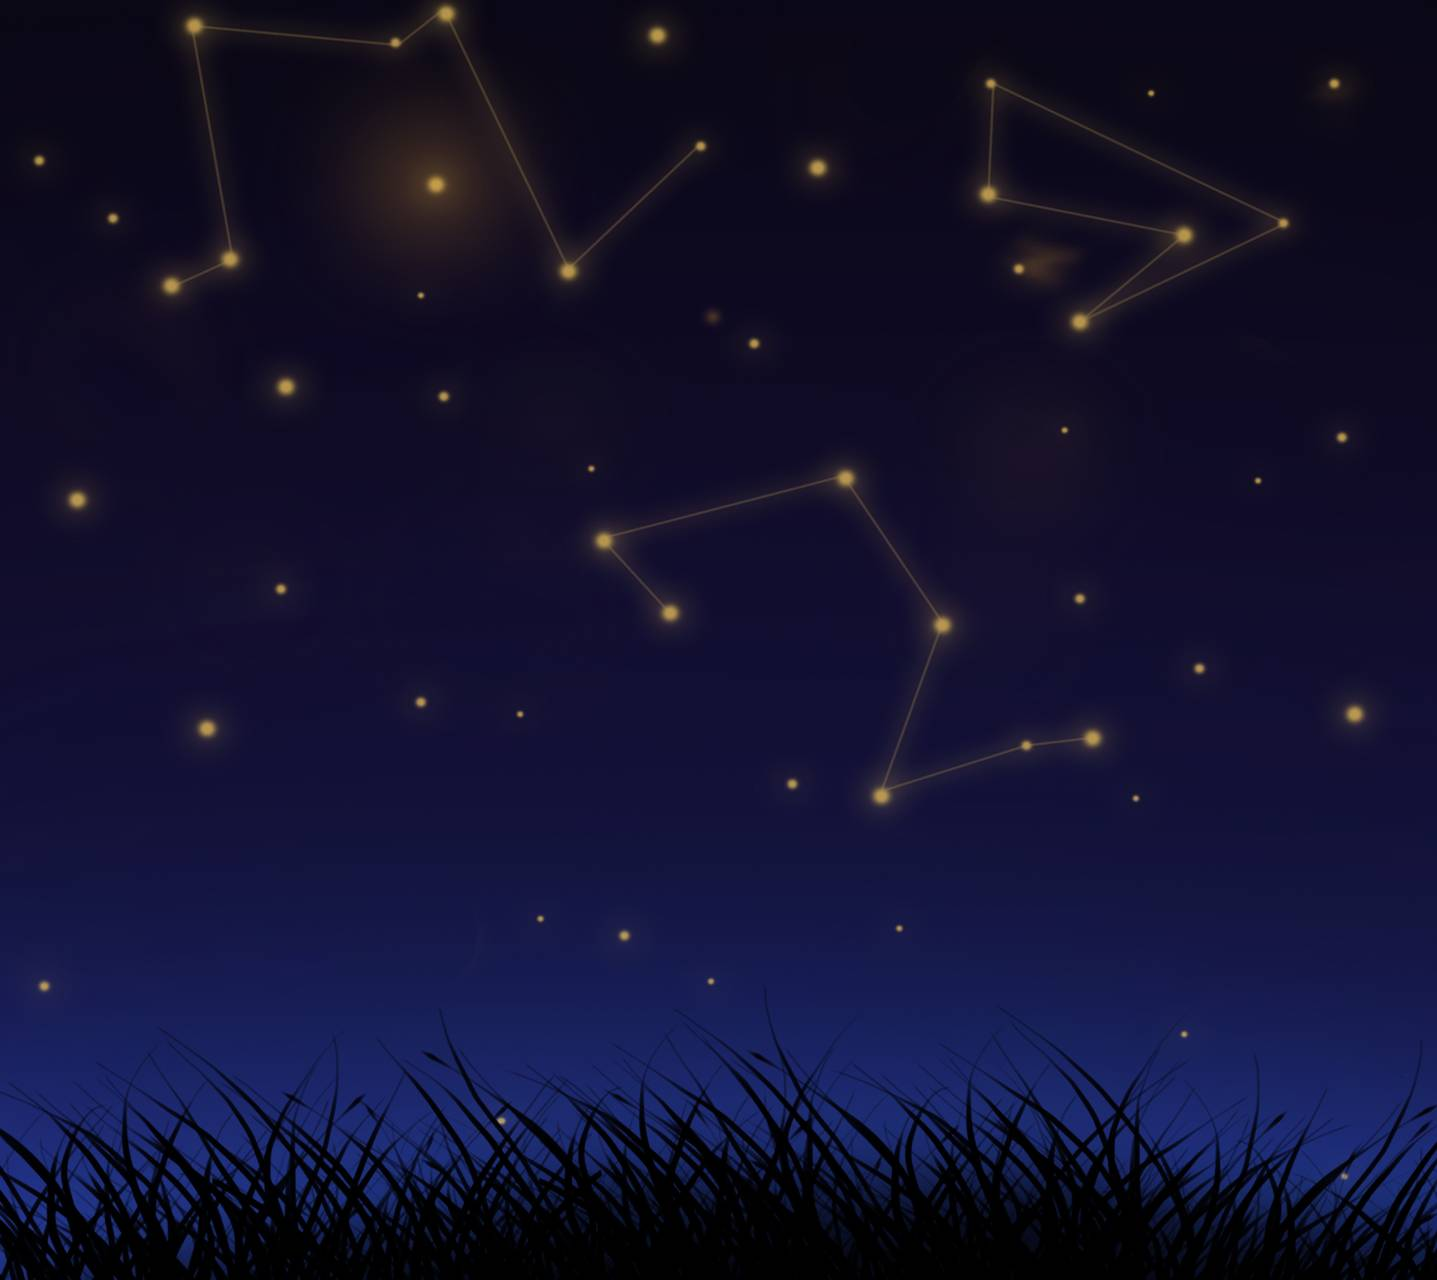 Star Map Wallpaper by Damisaus - 6e - Free on ZEDGE™